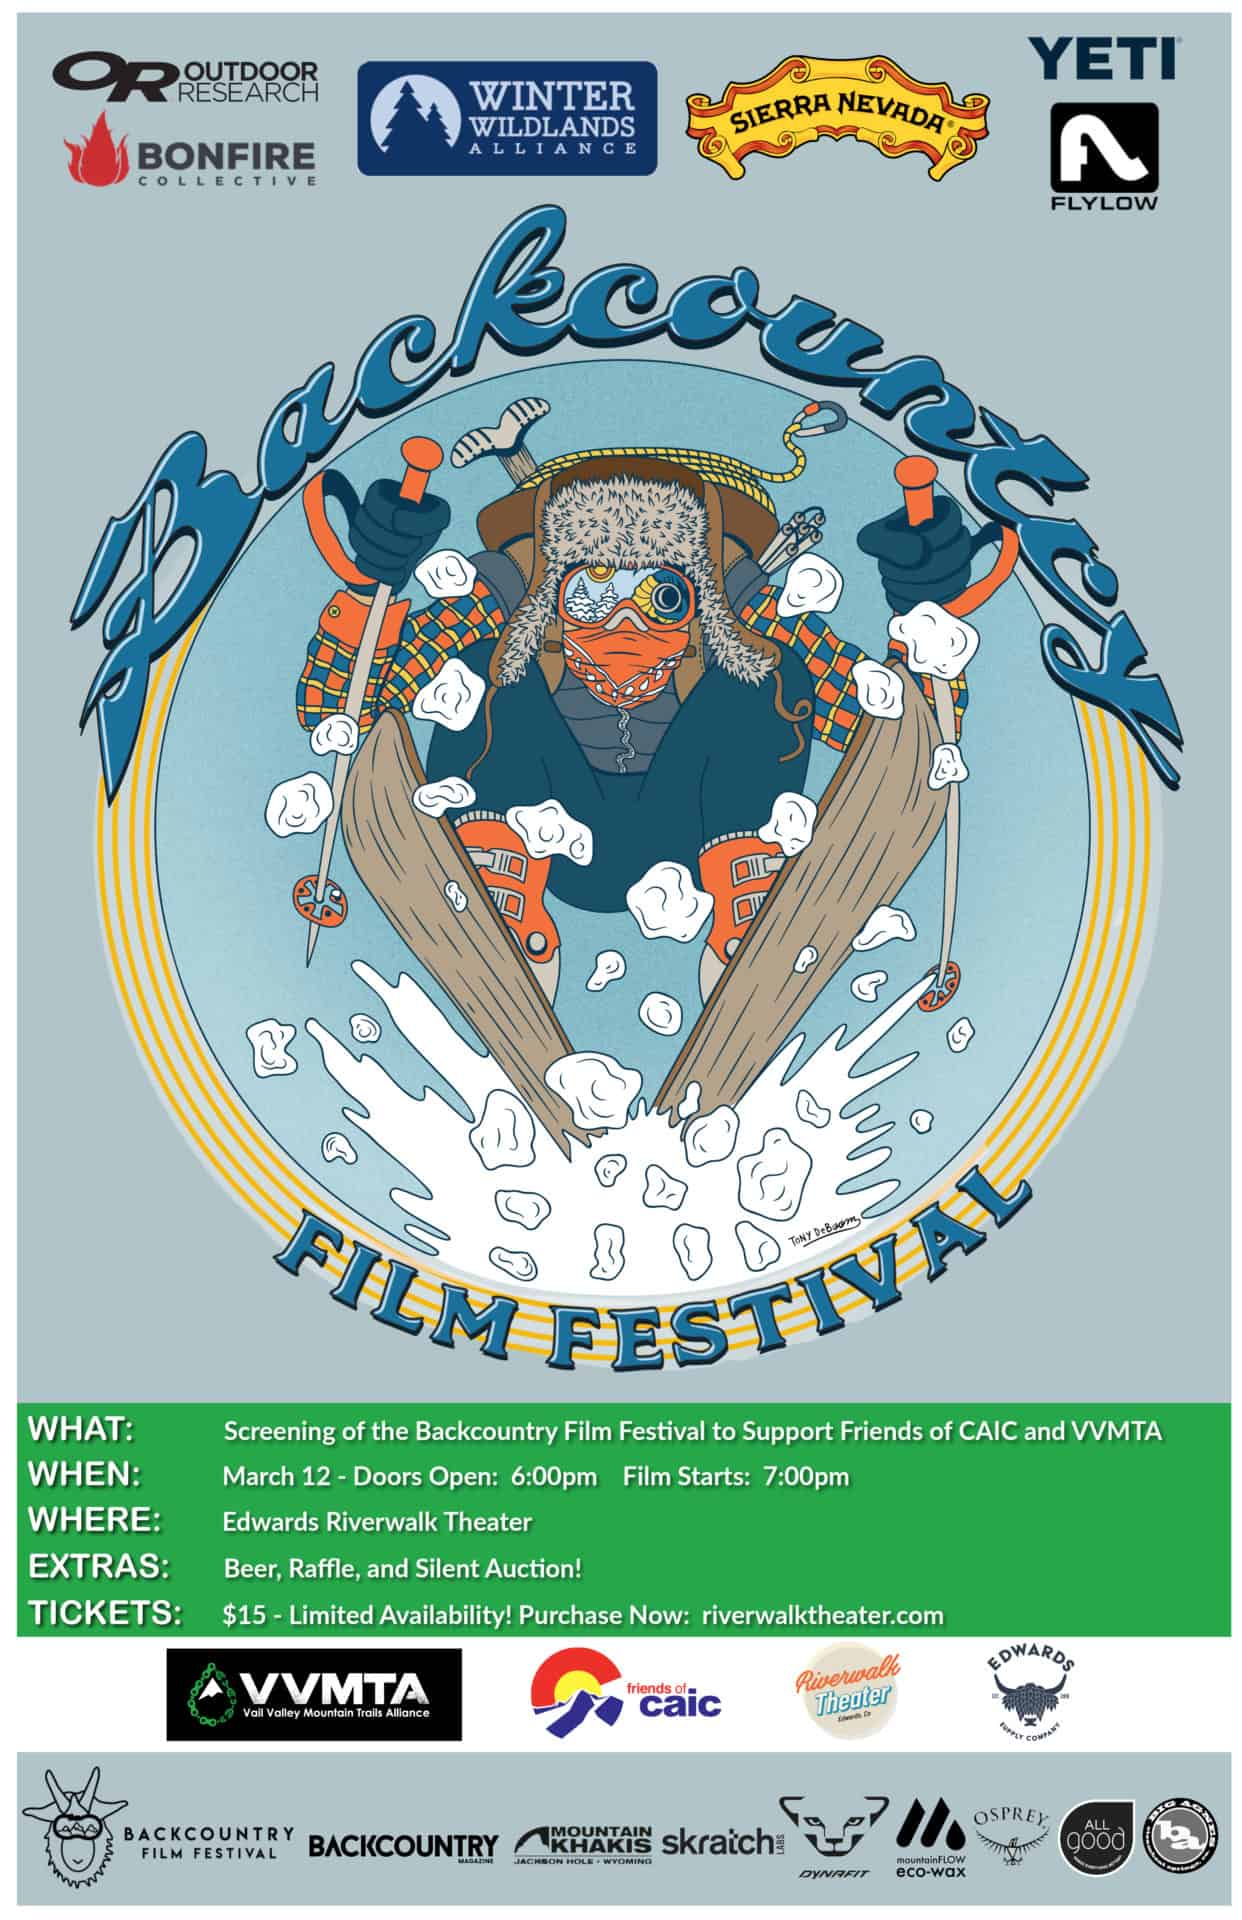 THE BACKCOUNTRY FILM FESTIVIAL